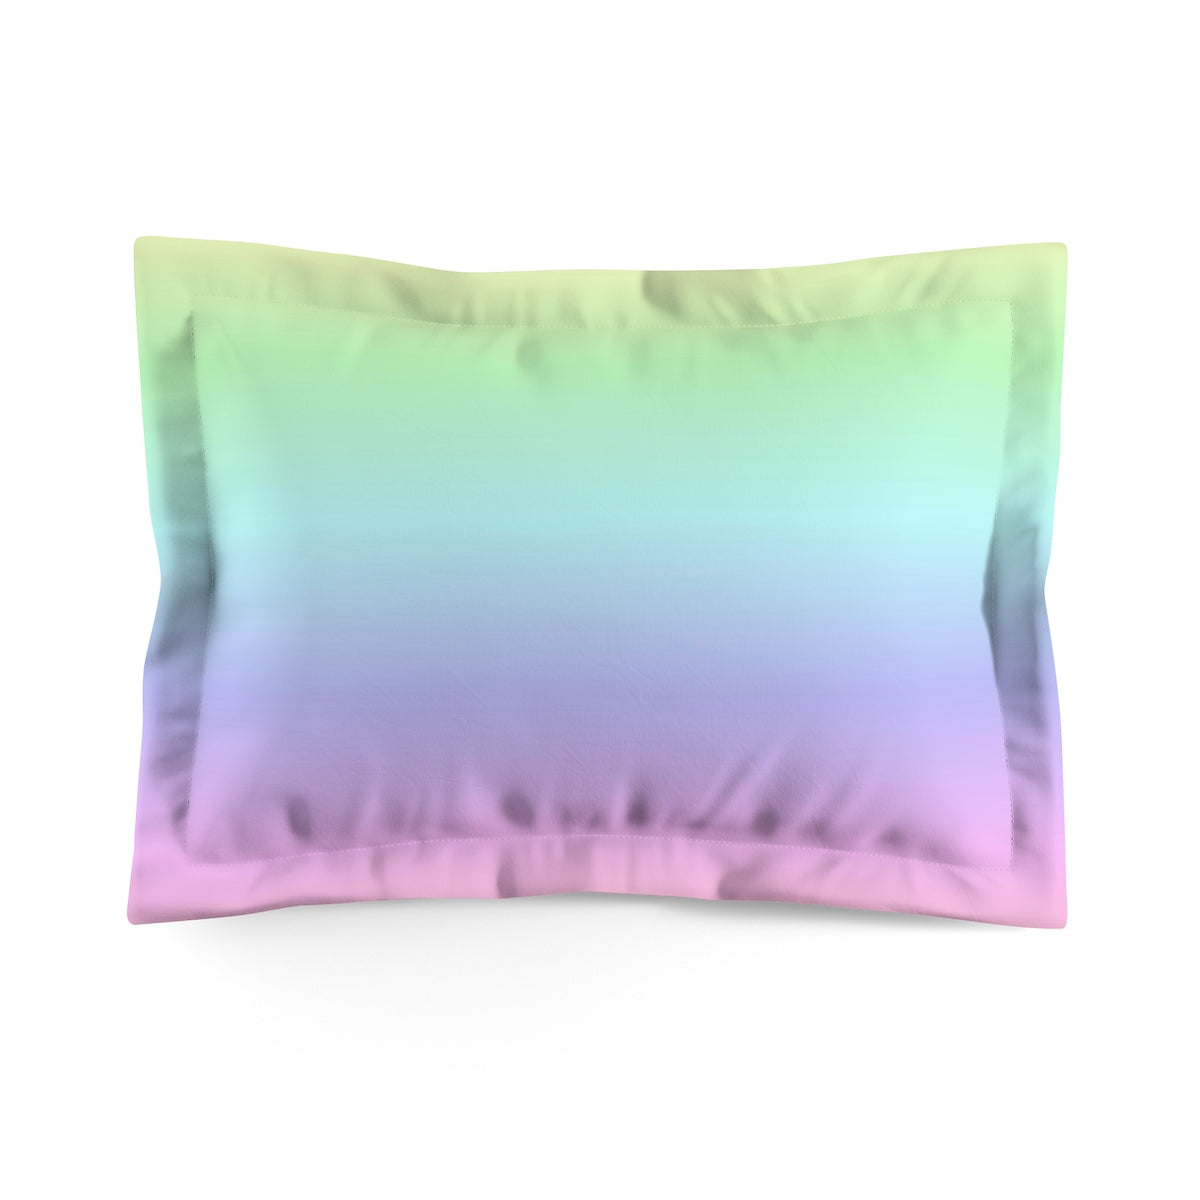 Pastel Rainbow Microfiber Pillow Sham Cover, King Queen Matching with Duvet Cover Throw Bed Pillow Case - Starcove Design